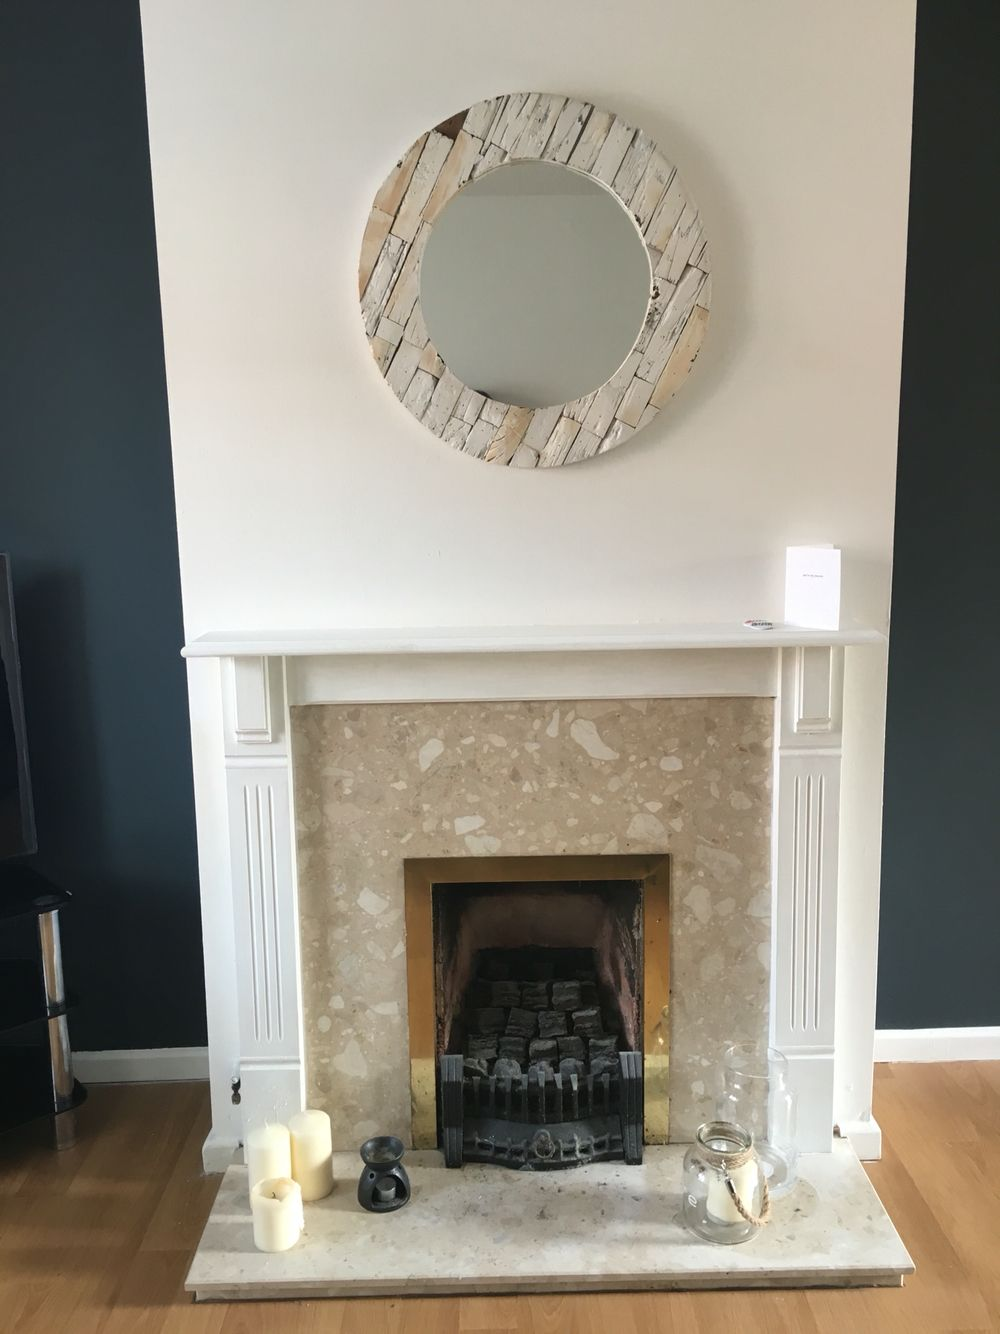 Marble fireplace in need of a makeover! Fireplace